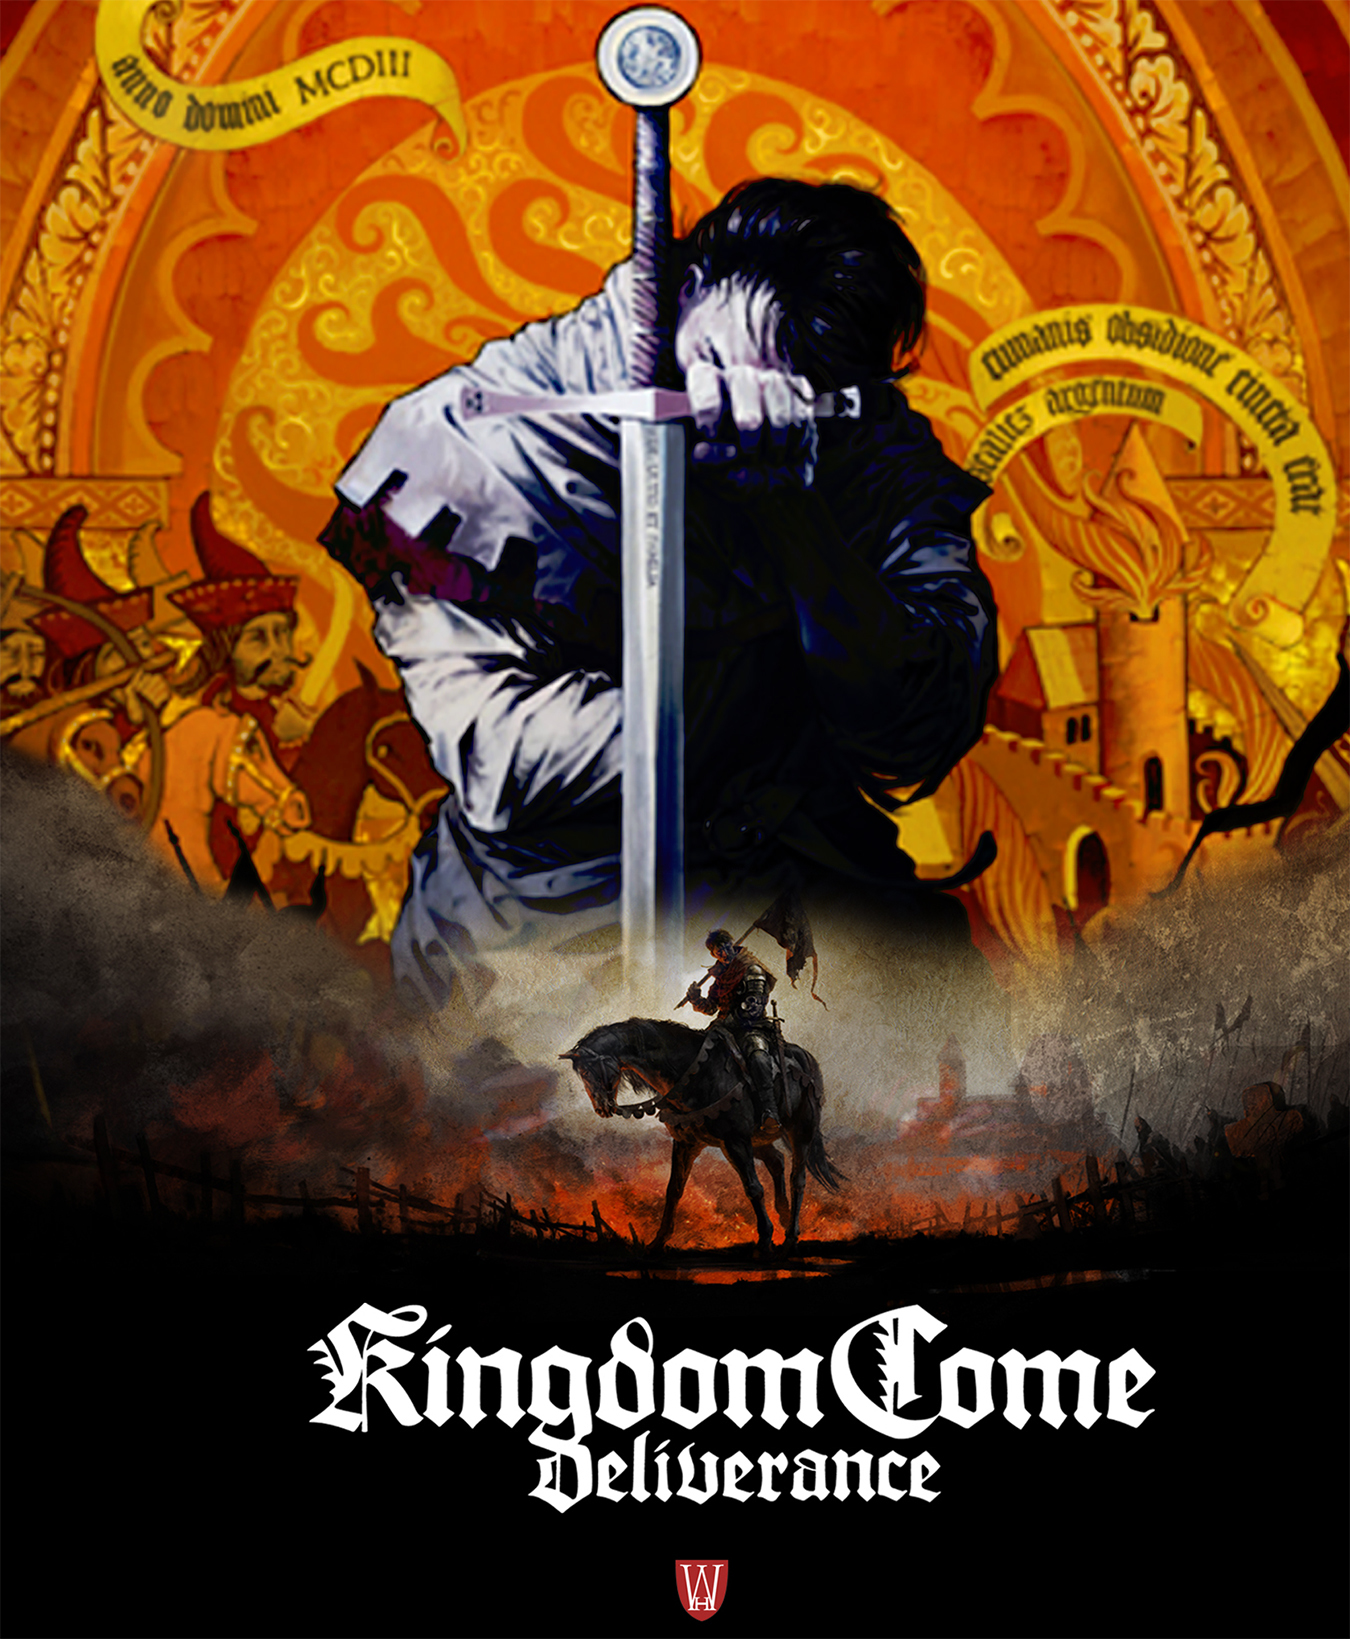 Image result for kingdom come deliverance cover art